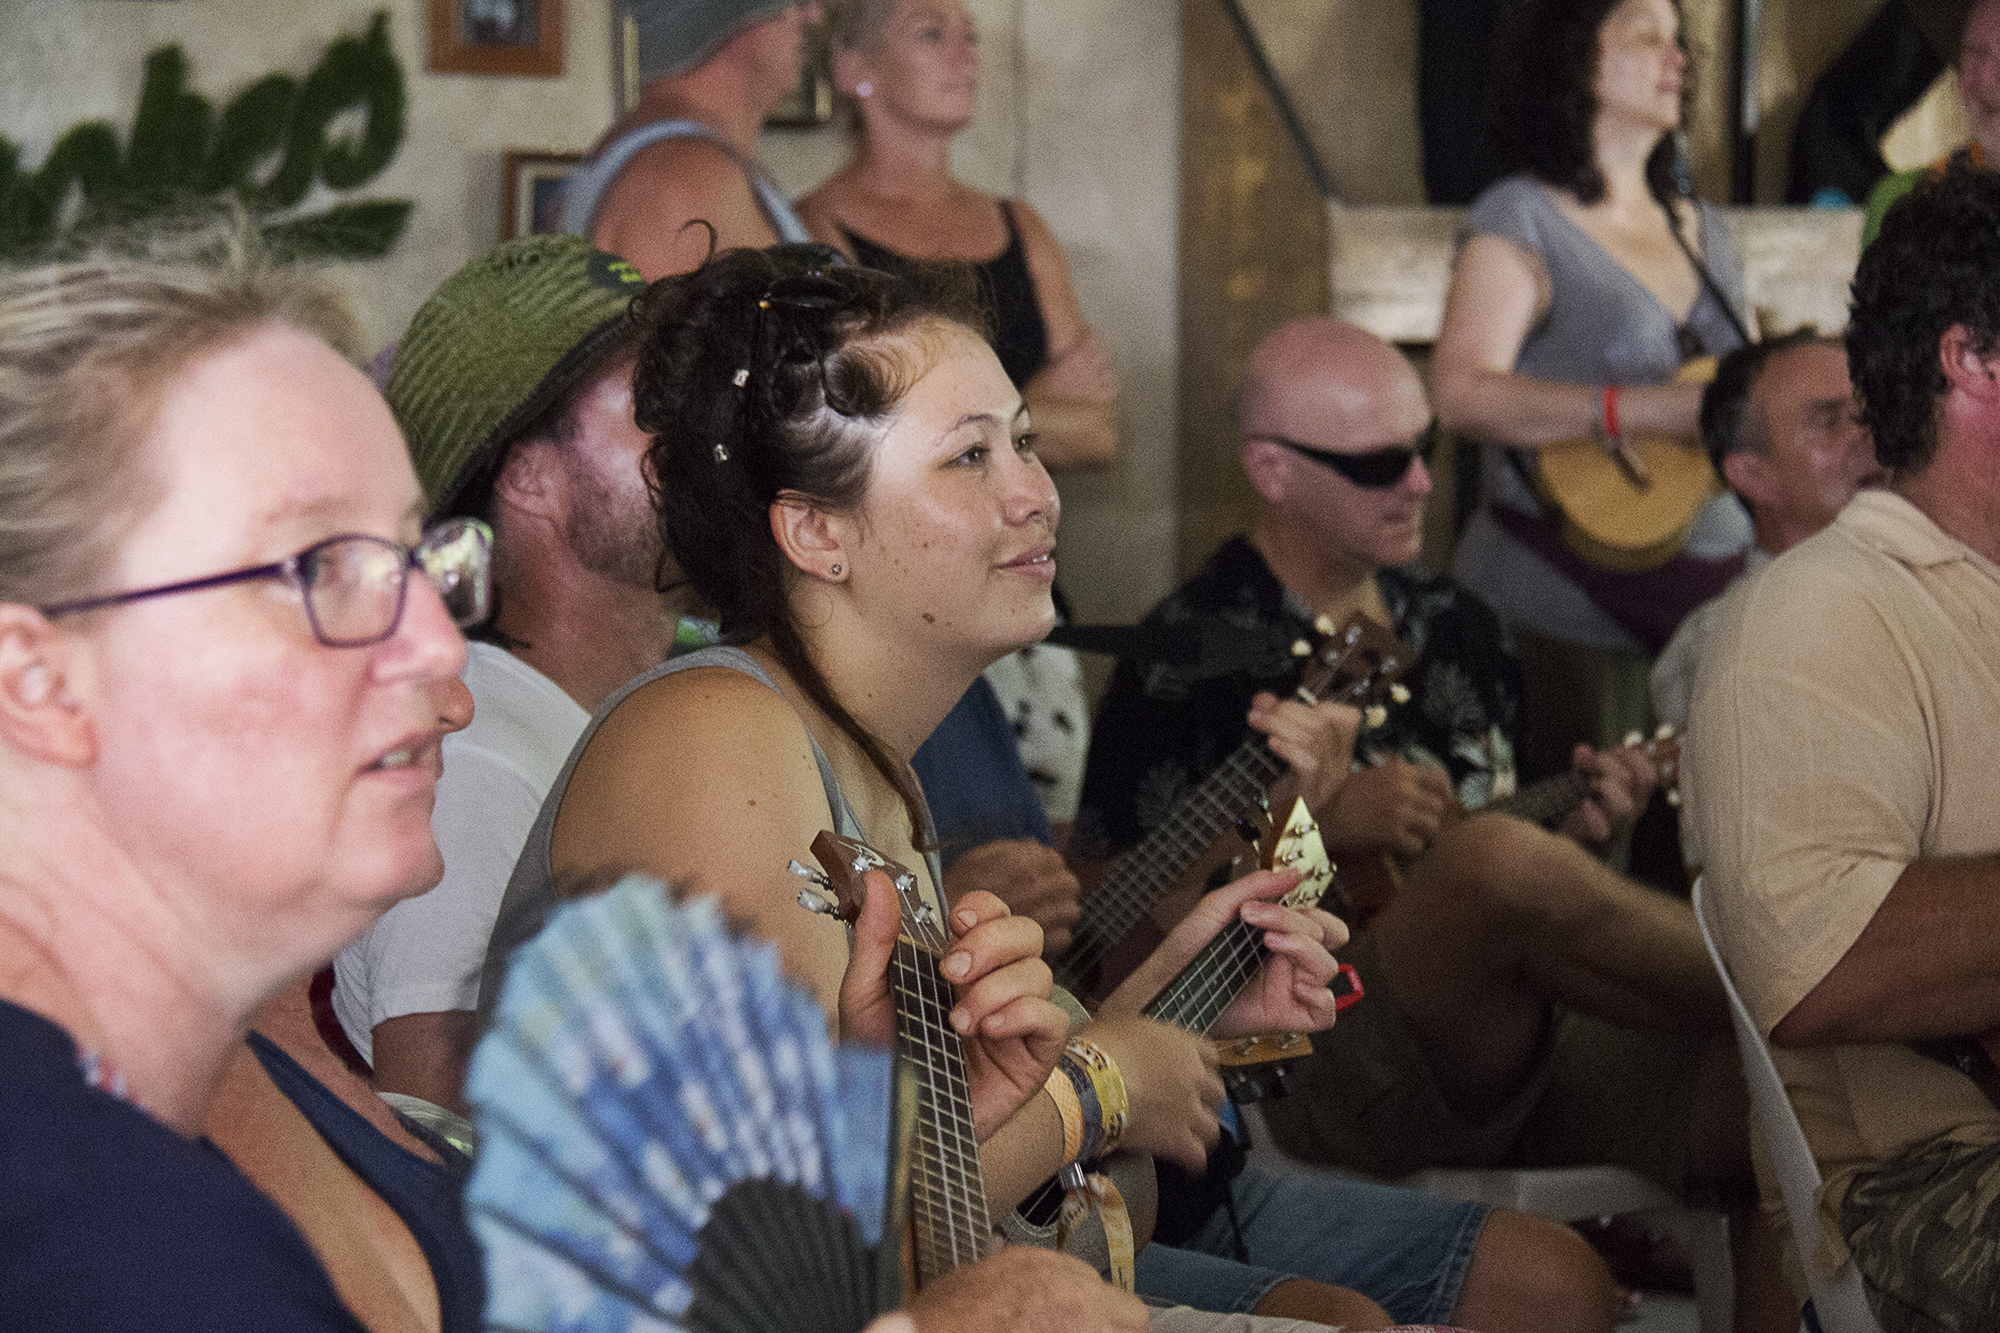 Ukulele Workshop | Woodford Folk Festival 17/18